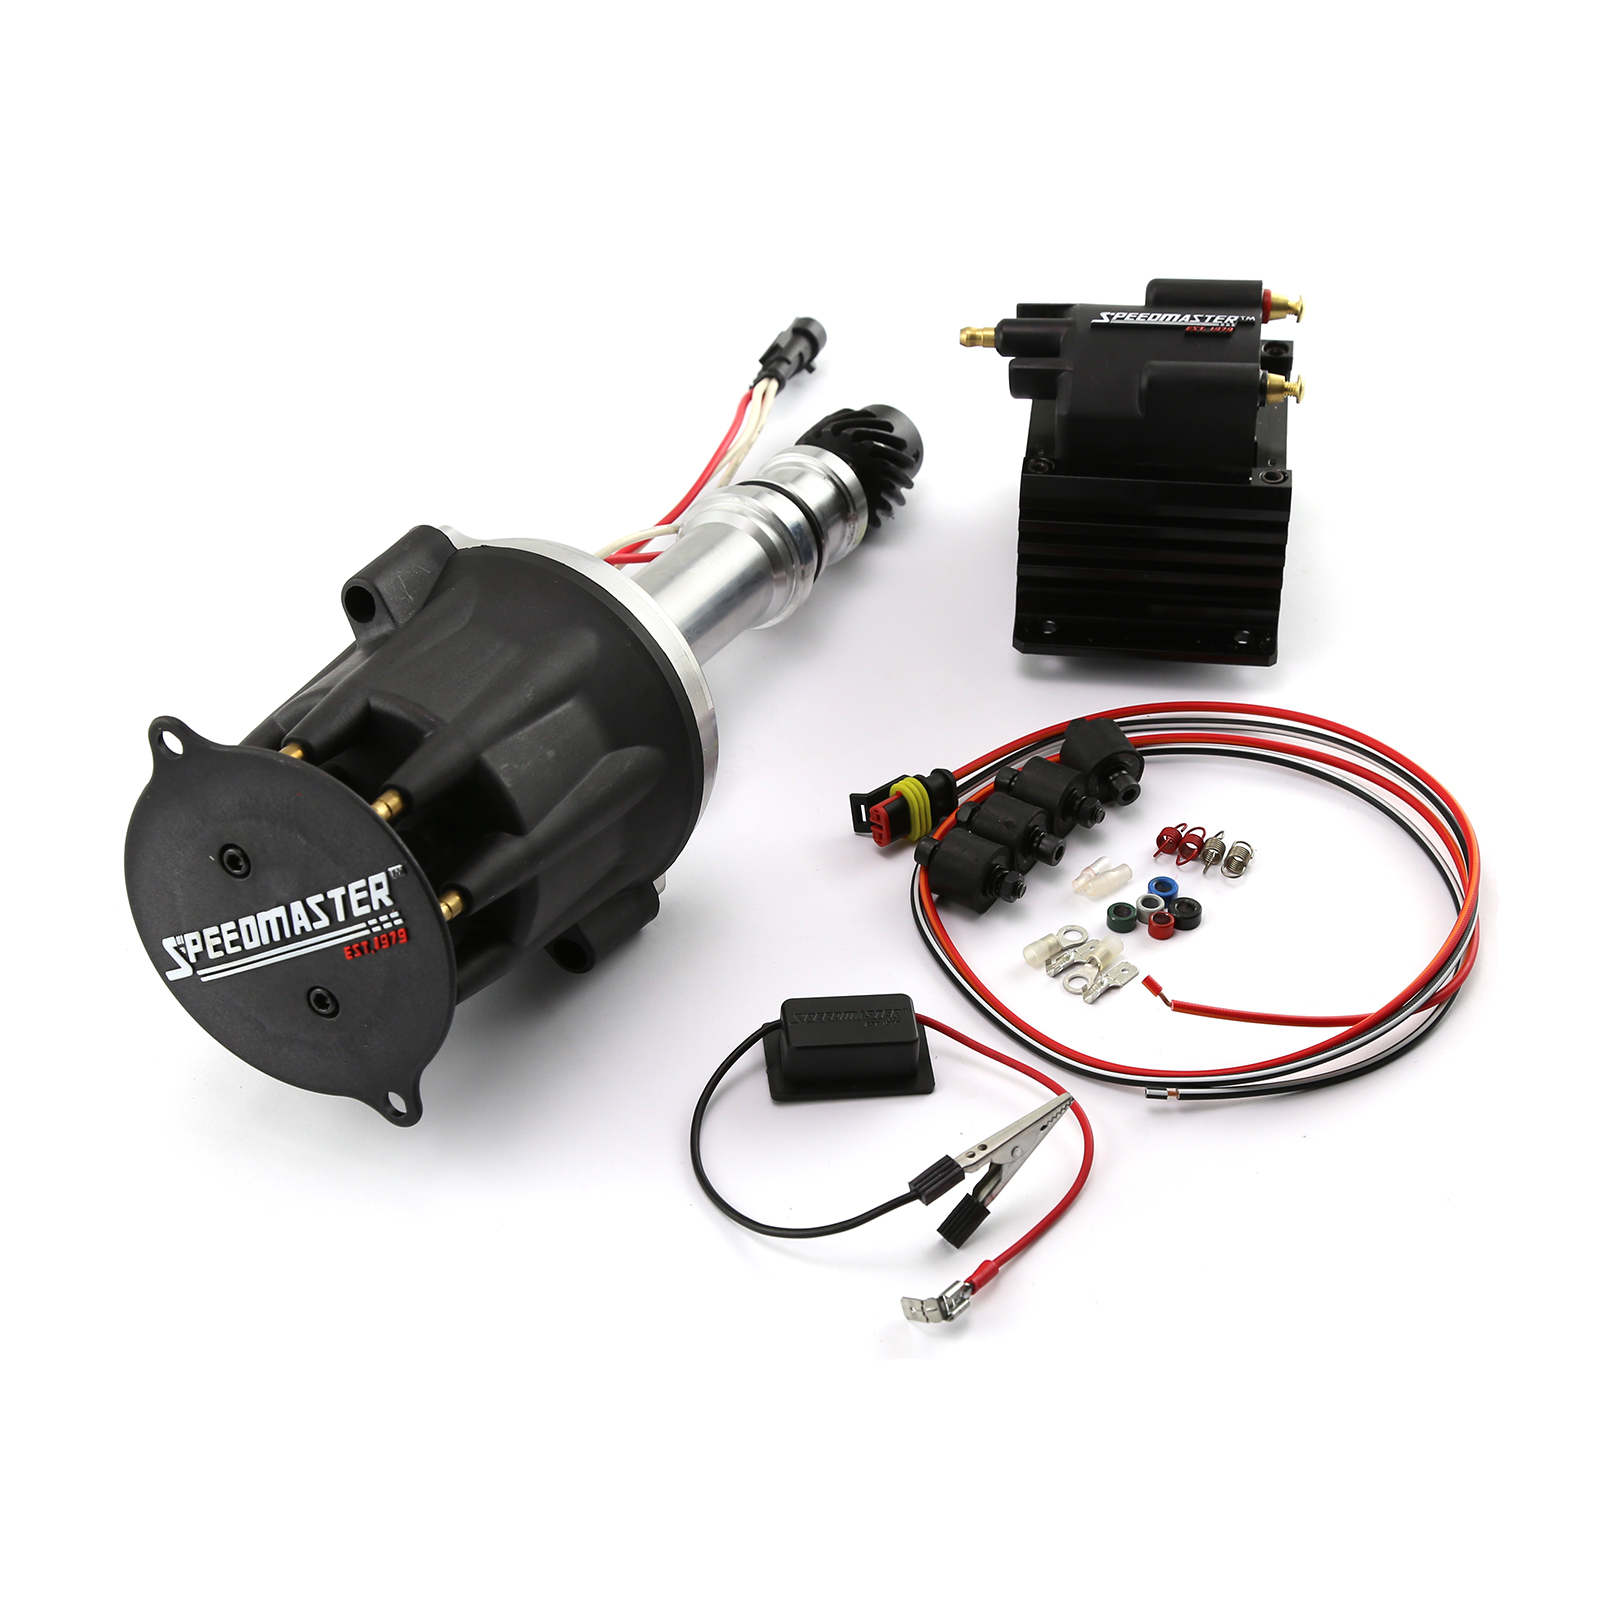 Oldsmobile 400 425 455 - El Rayo DNA® - Distributor Ignition Kit